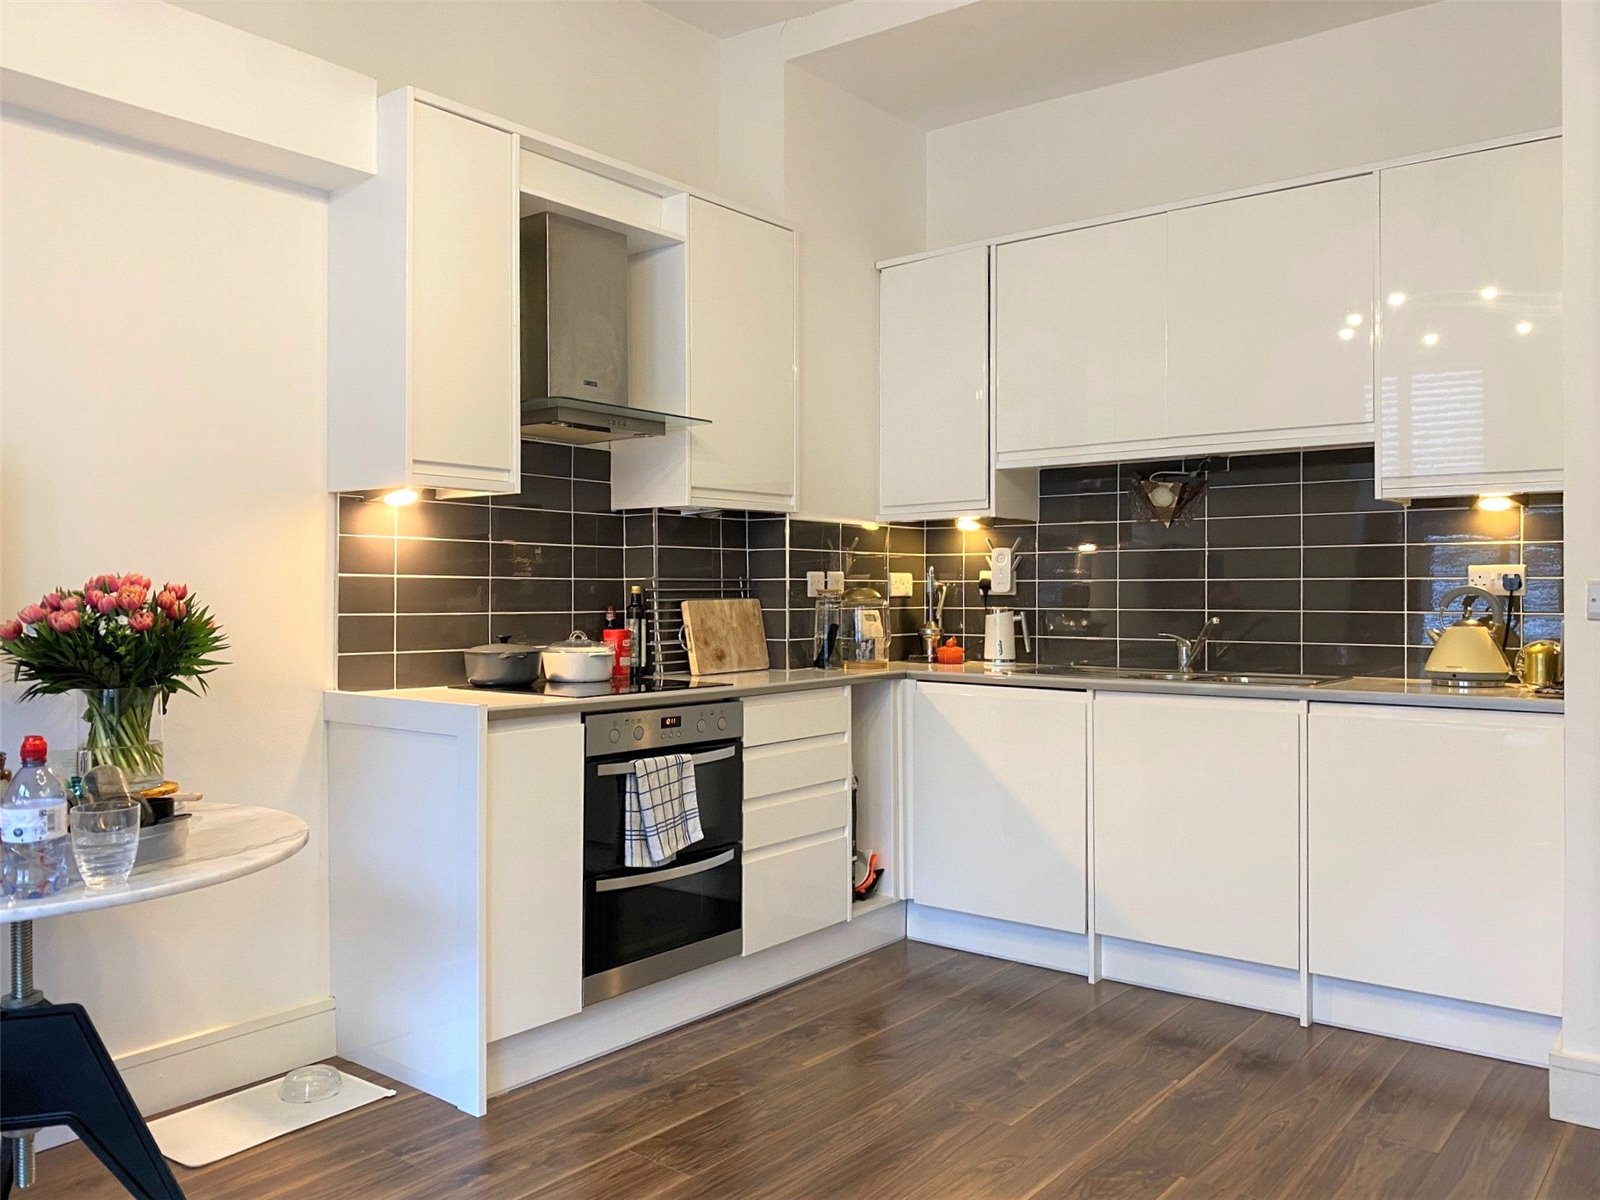 1 bed apartment to rent in Tottenham, N17 8LY, N17